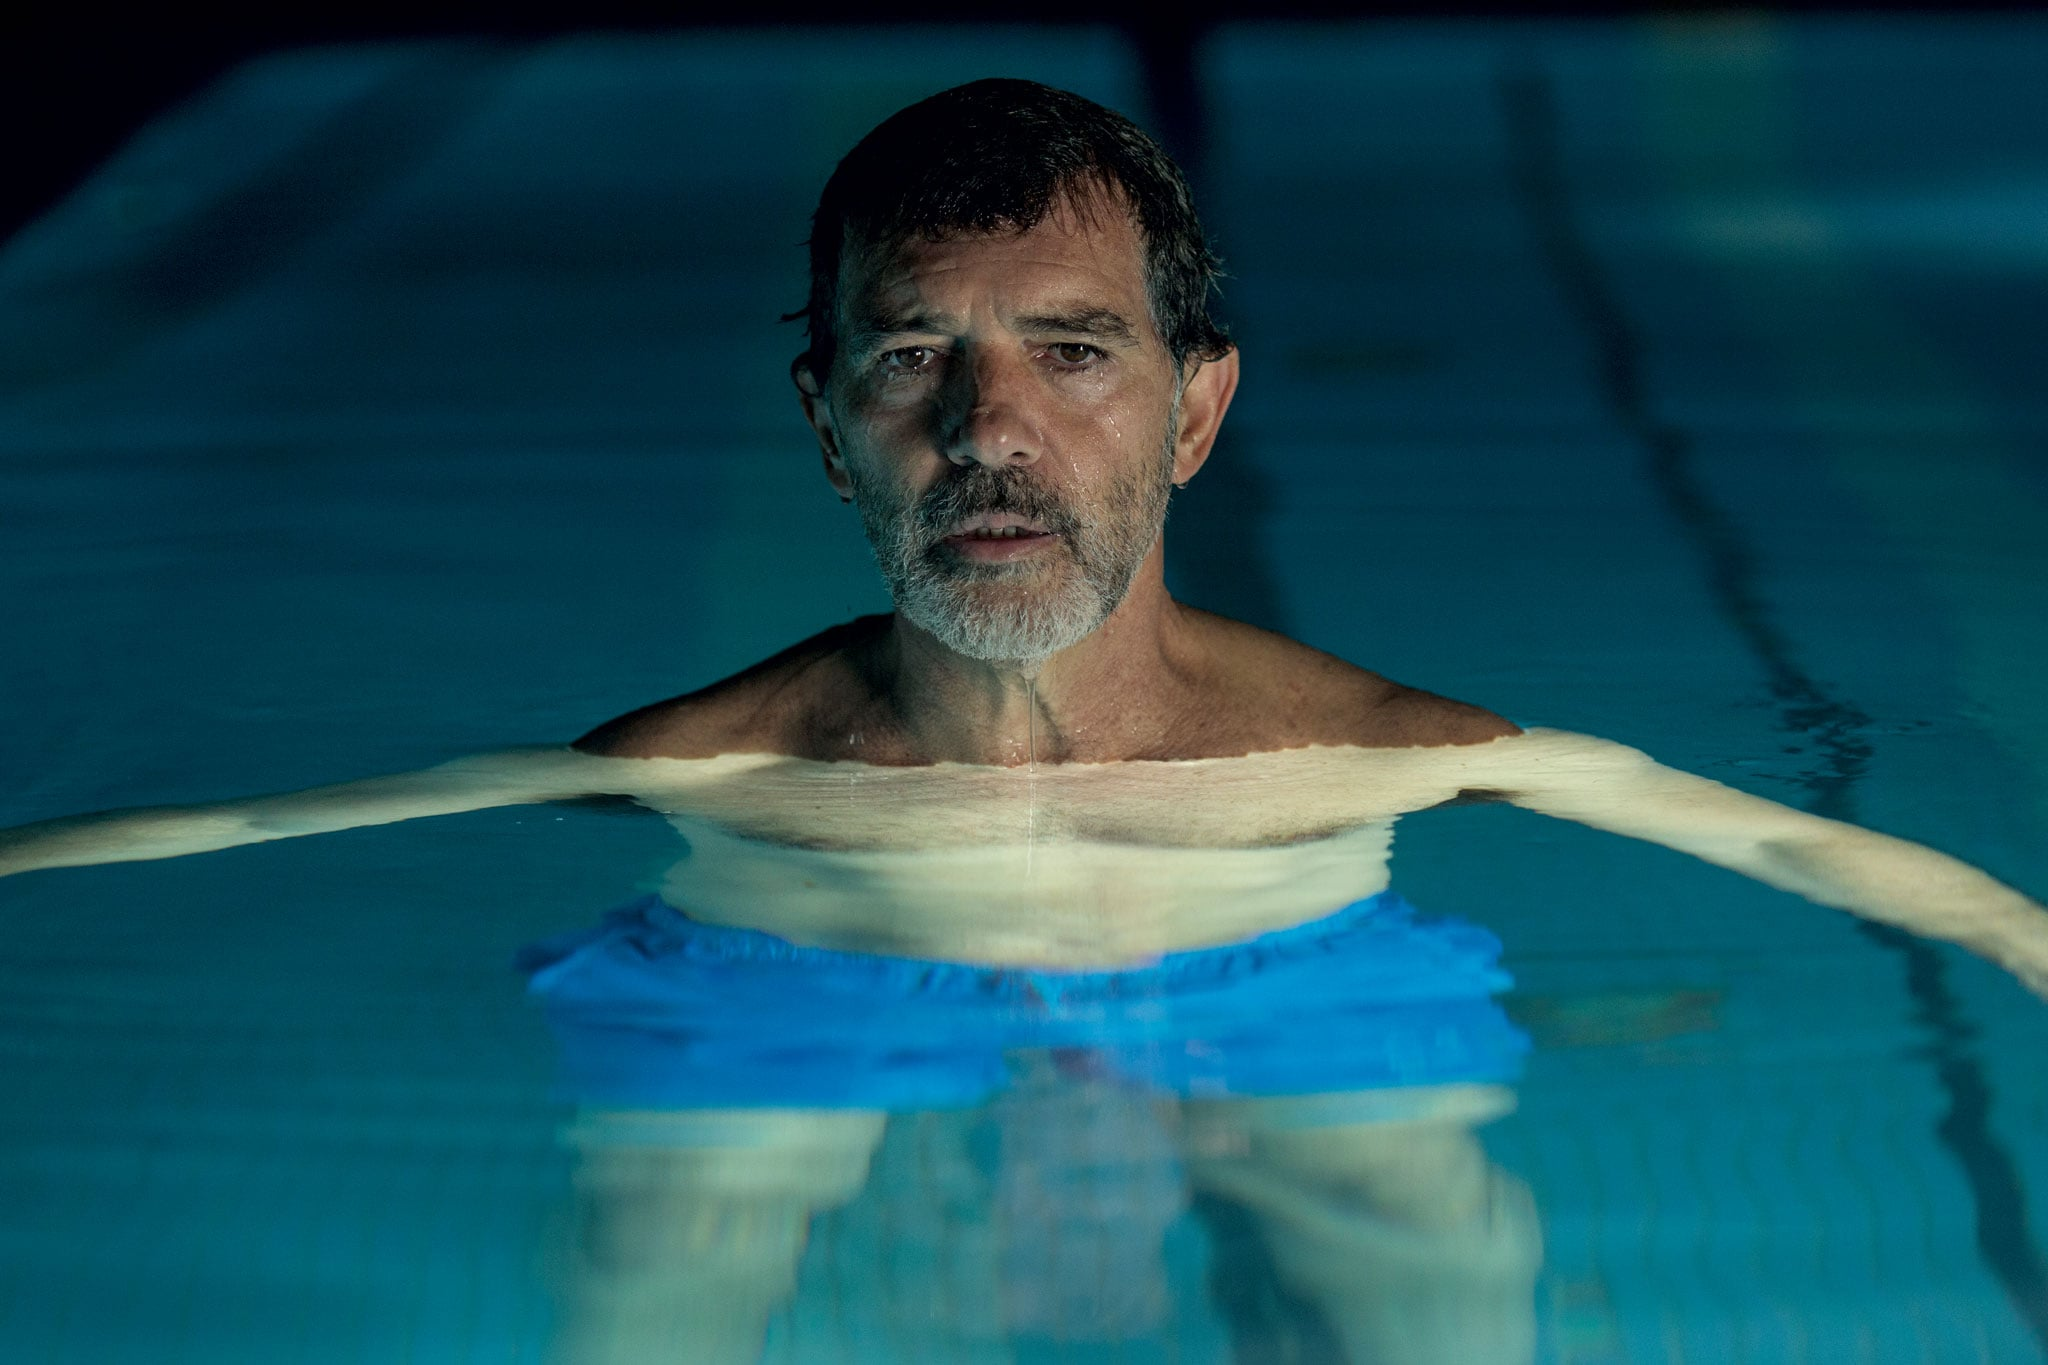 Antonio-Banderas-as-Salvador-Mallo-1-1.jpg